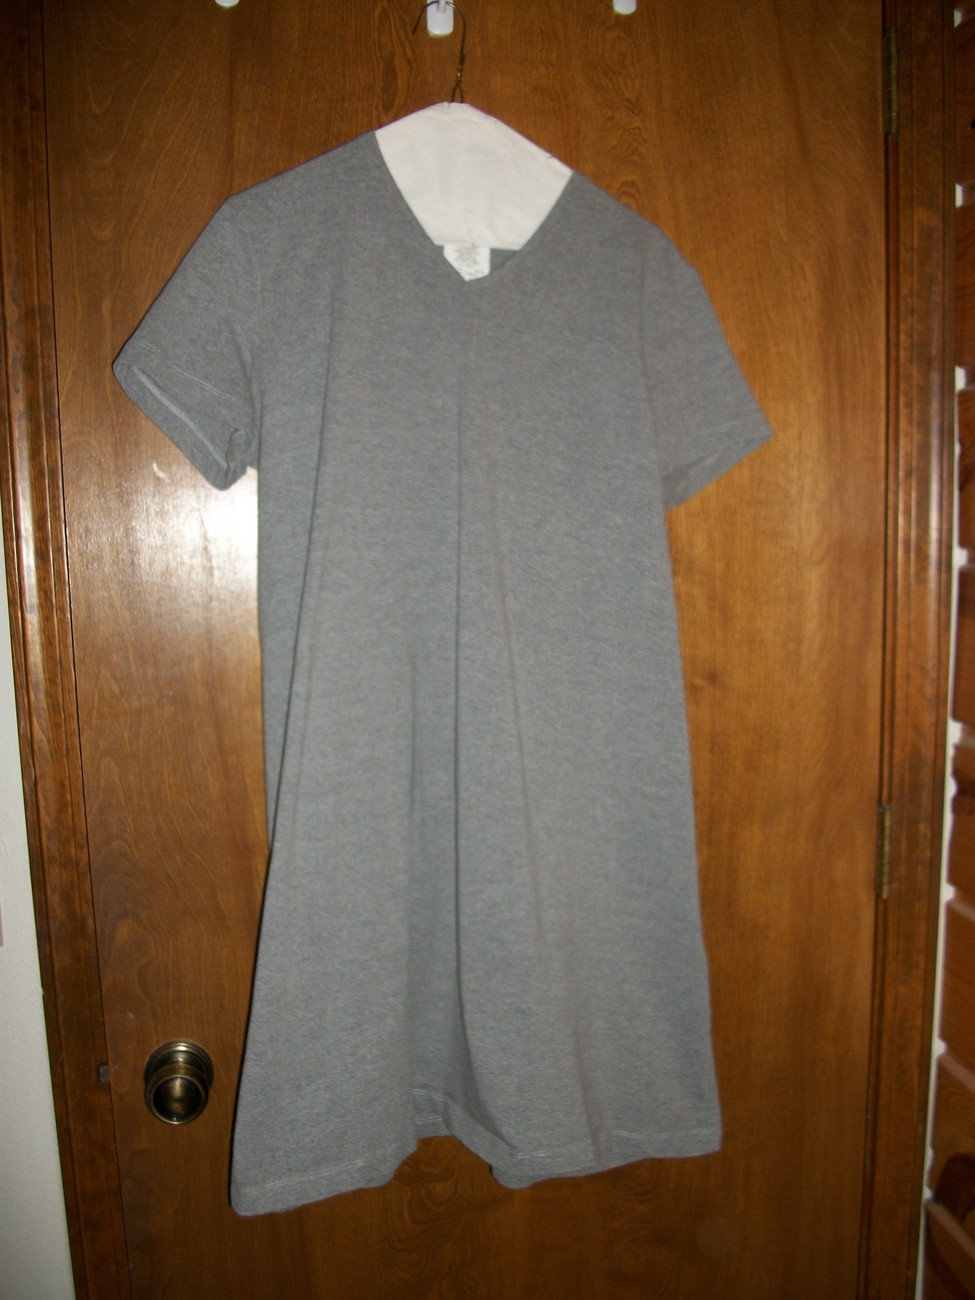 Preowned Motherhood Maternity Gray Shirt Dress Size Large Motherhood